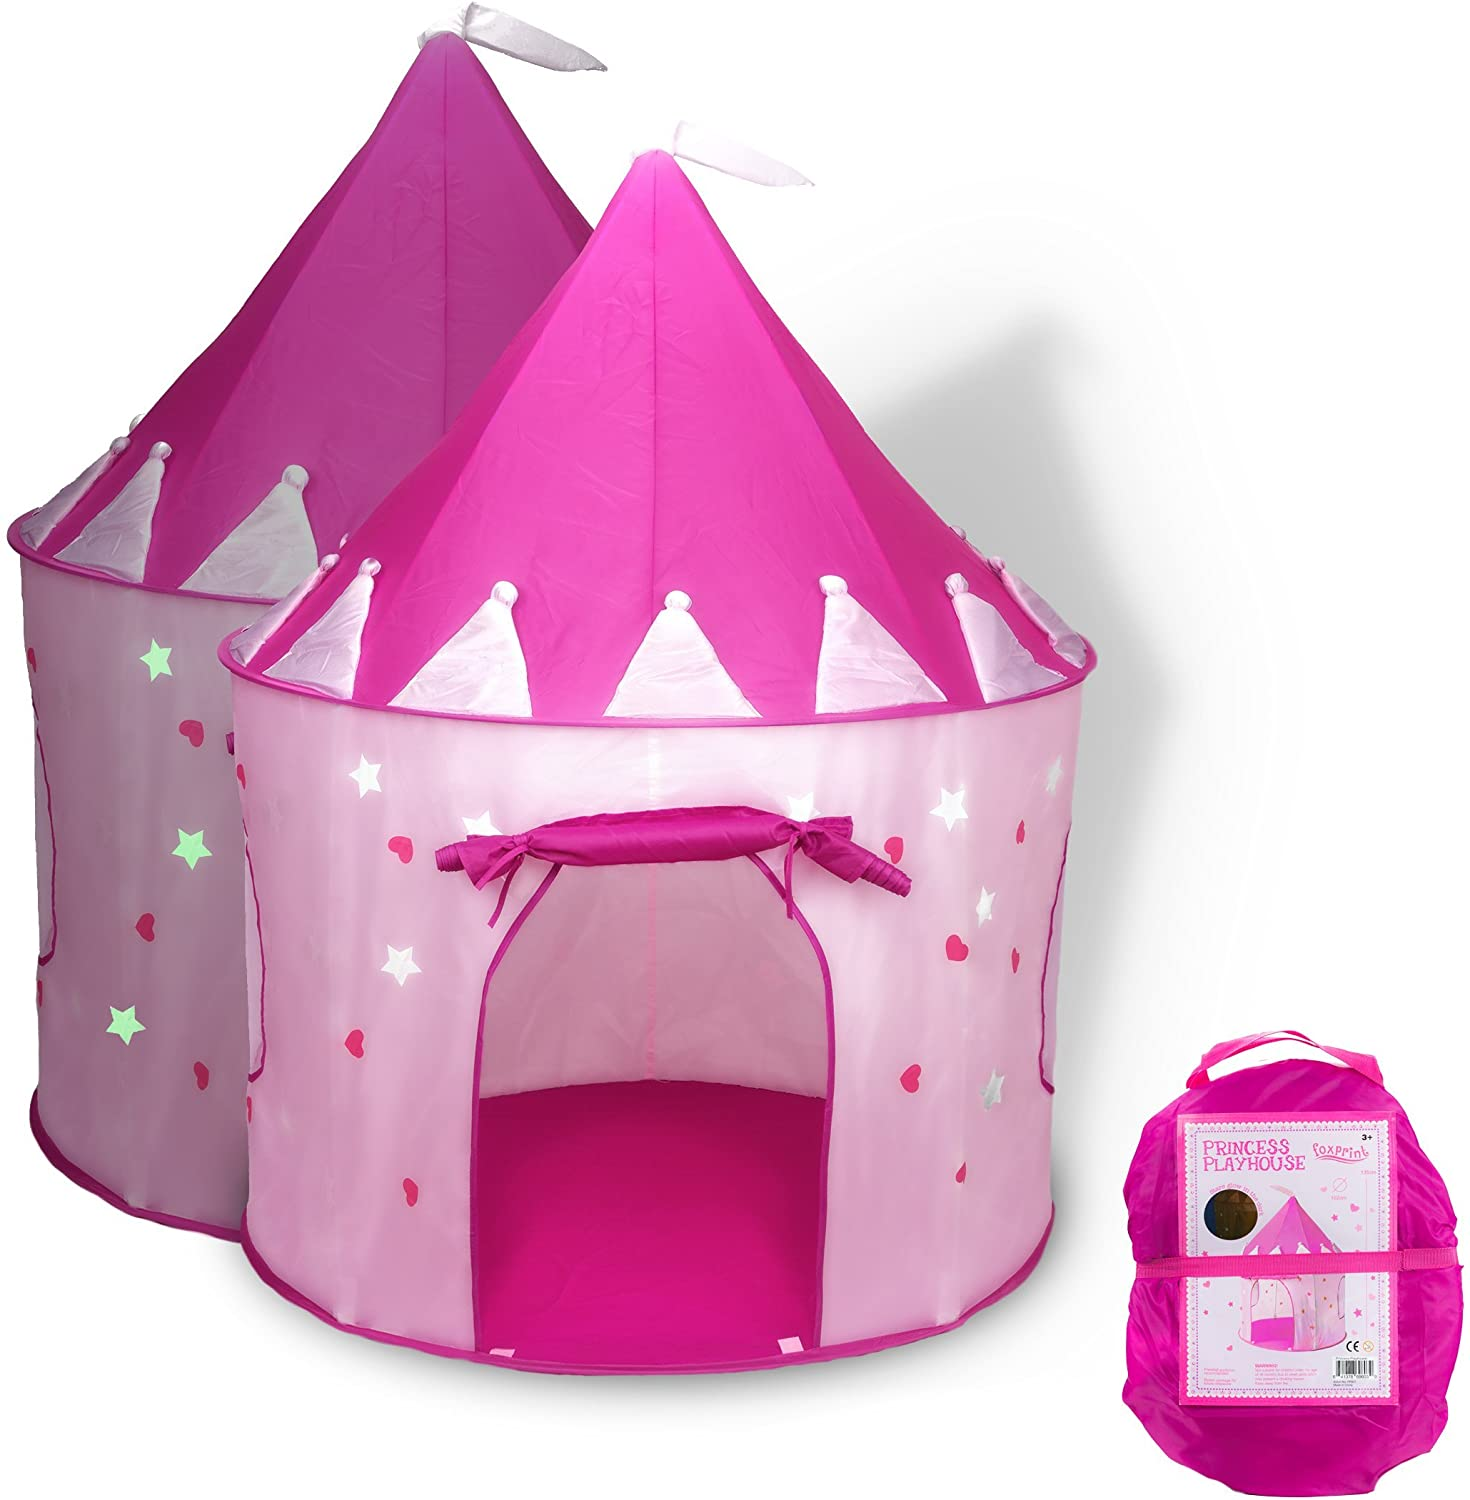 FoxPrint Princess Castle